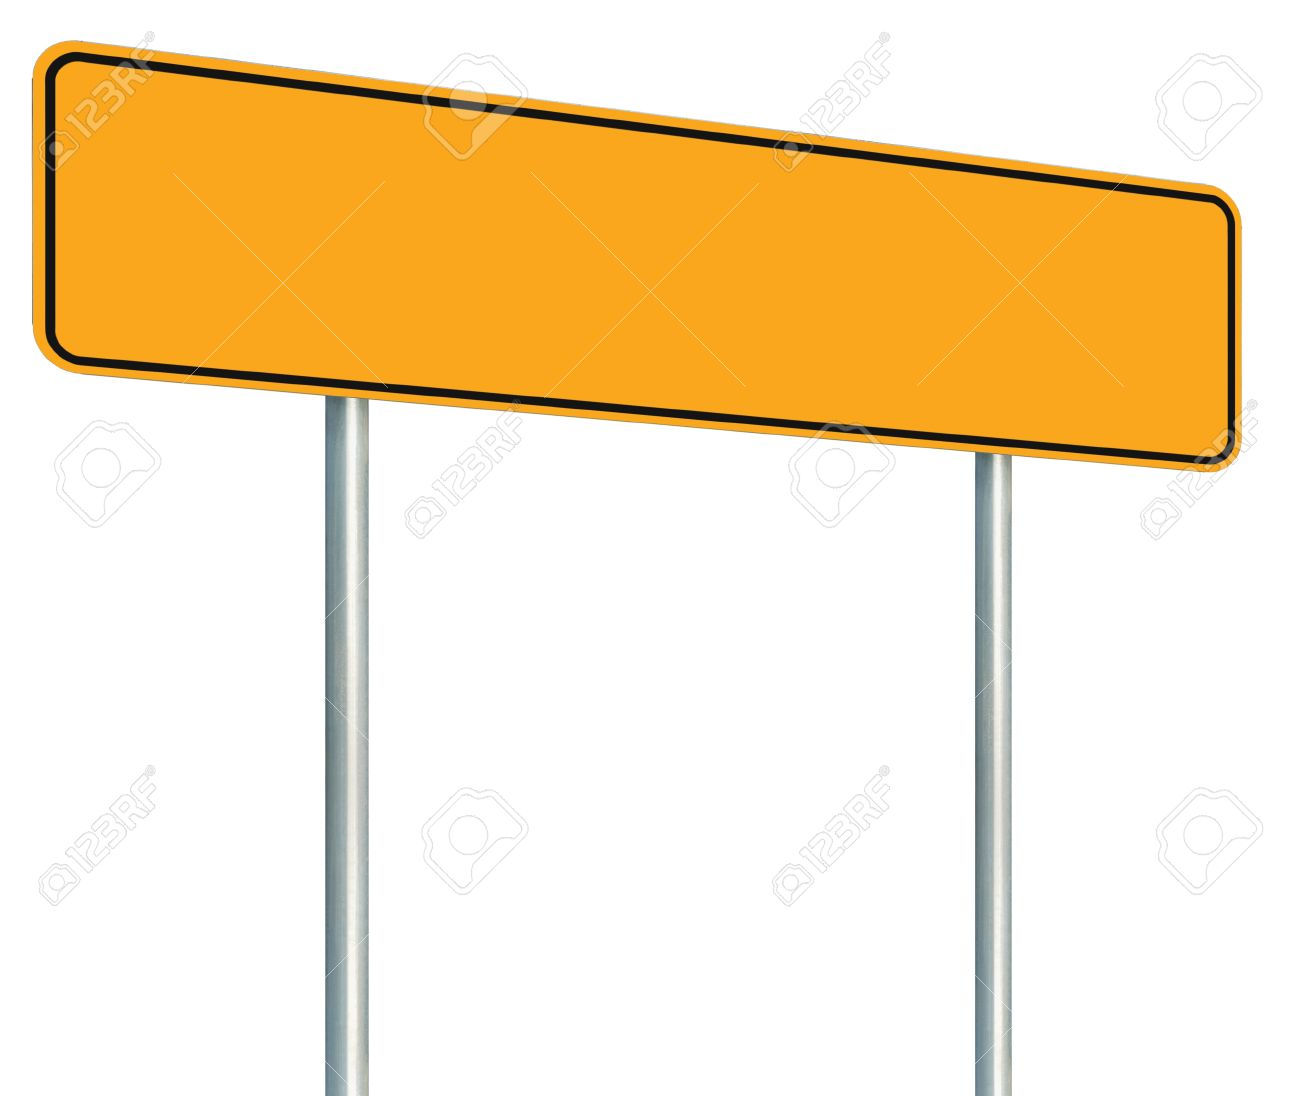 Blank Yellow Road Sign, Isolated Large Warning Copy Space, Black Frame Roadside Signpost Signboard Pole Post Empty Traffic Signage Perspective Stock Photo - 20363937